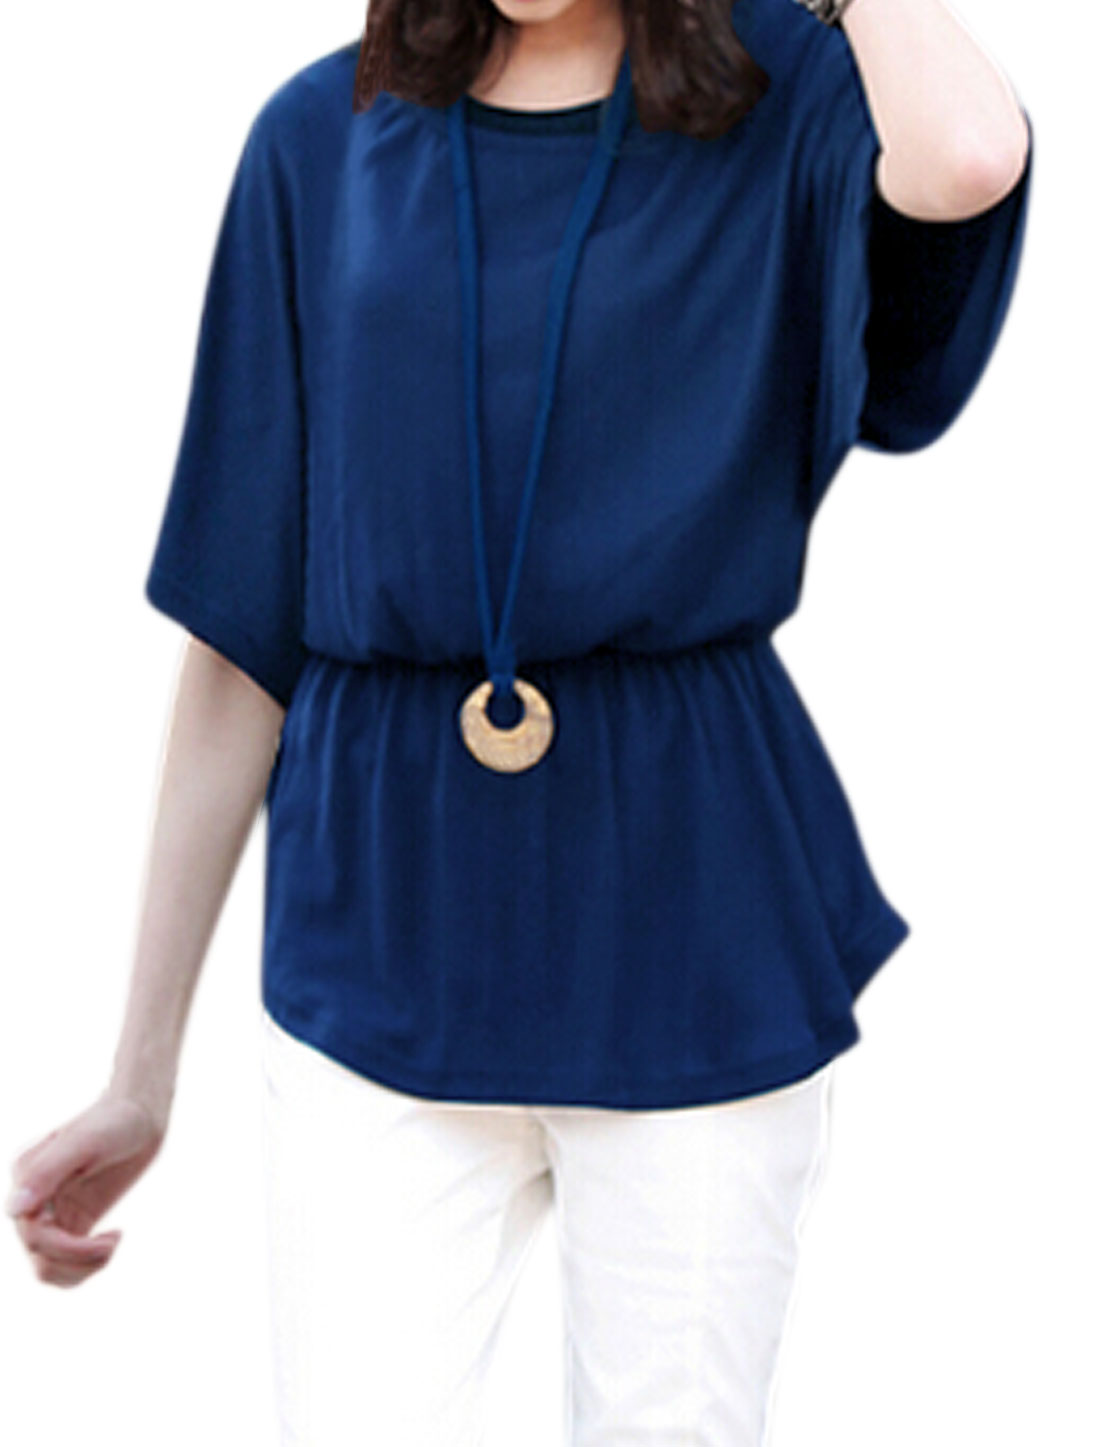 Women Elastic Waist Batwing Blouse w Sweater Cord Necklace Blue XS